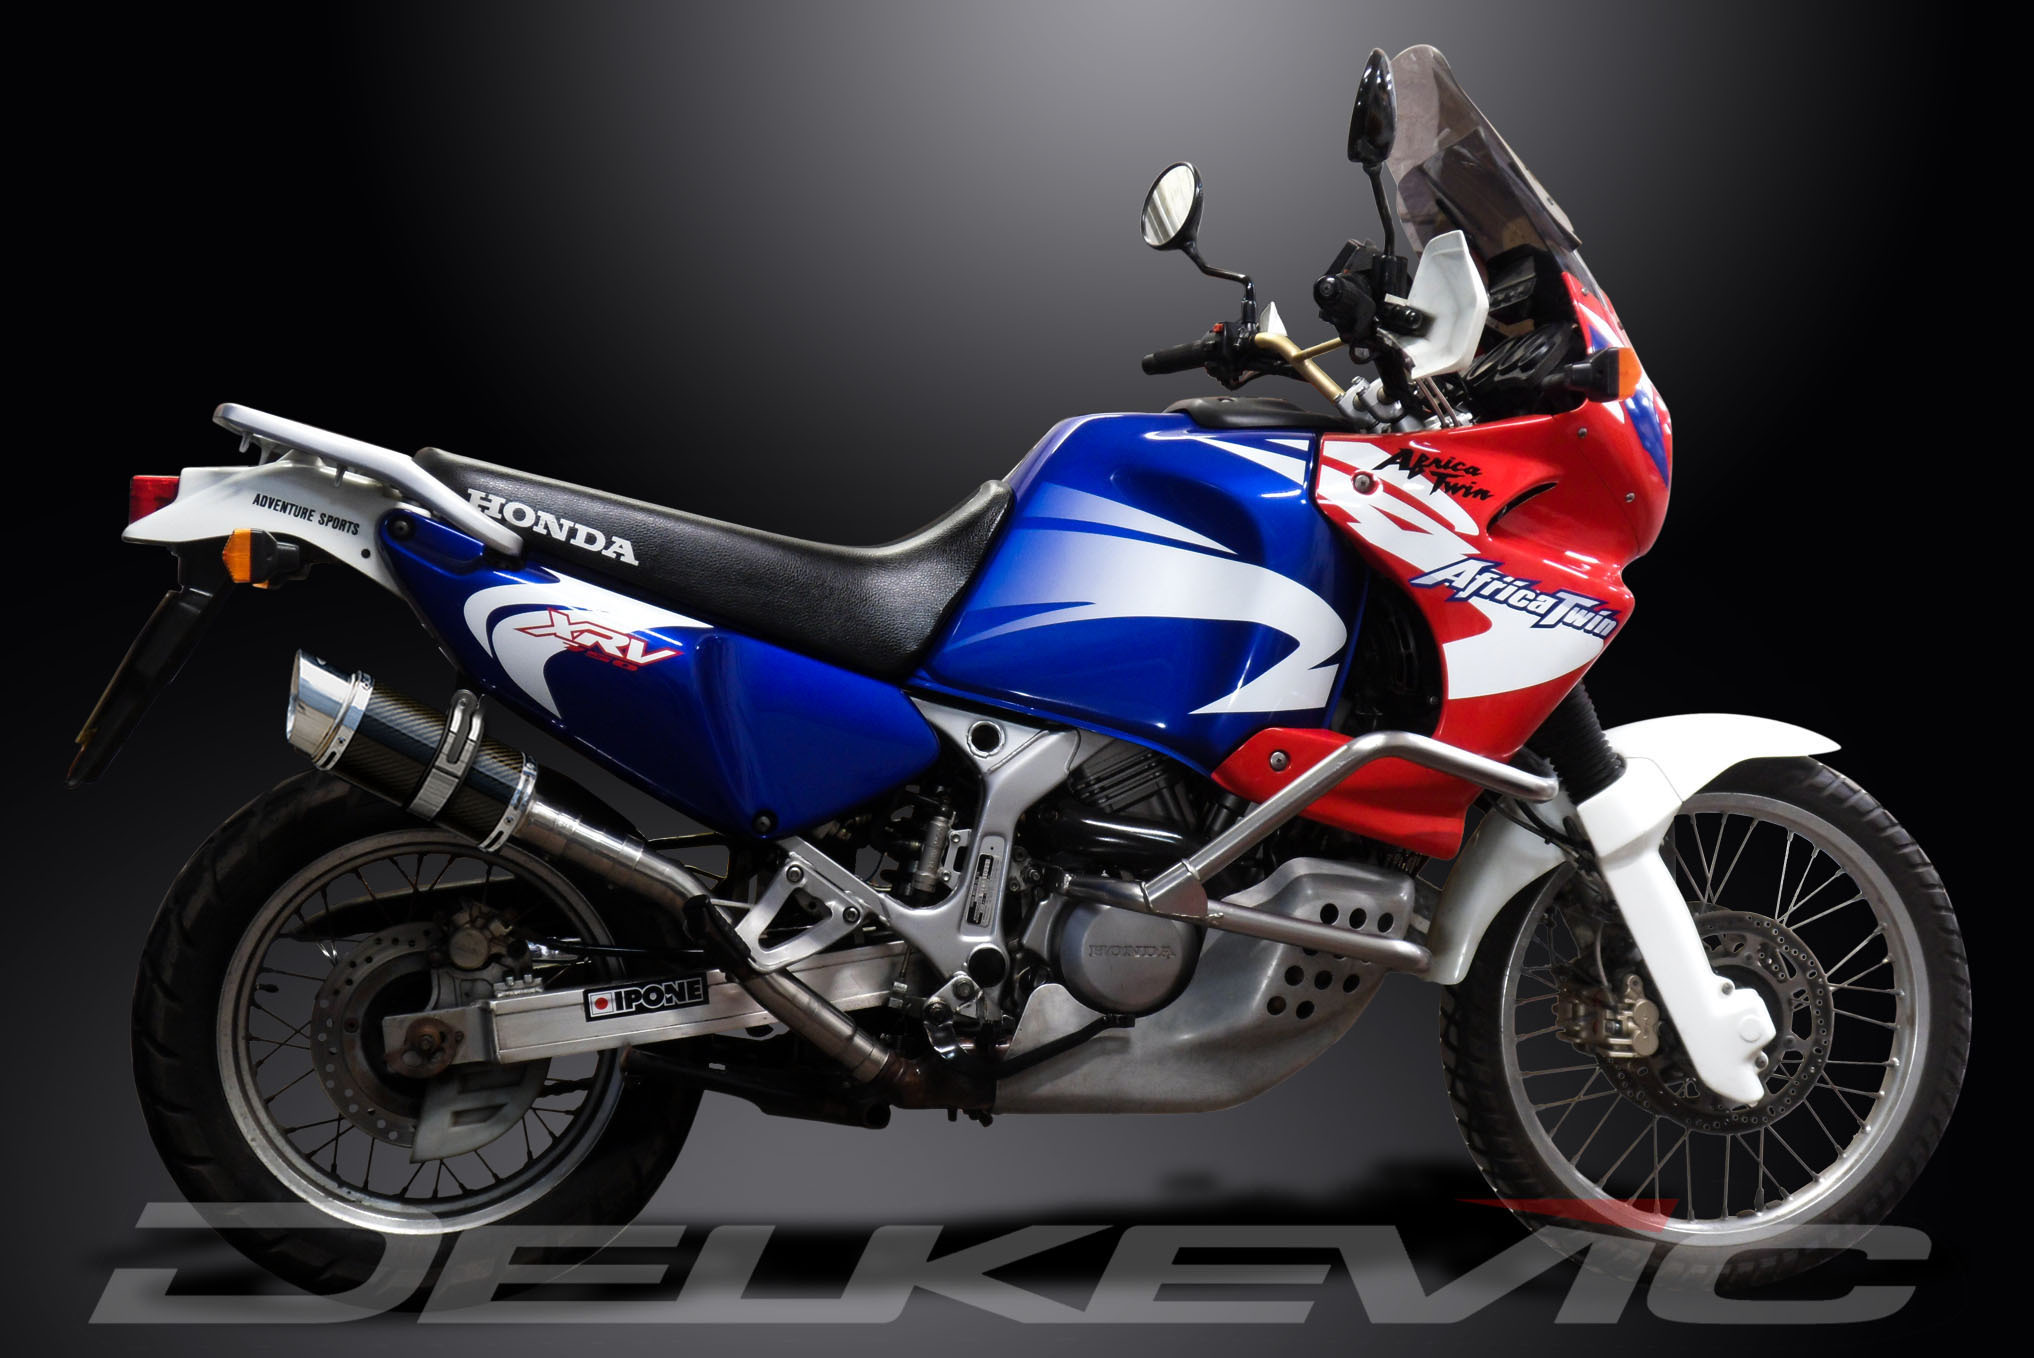 XRV750 Africa Twin